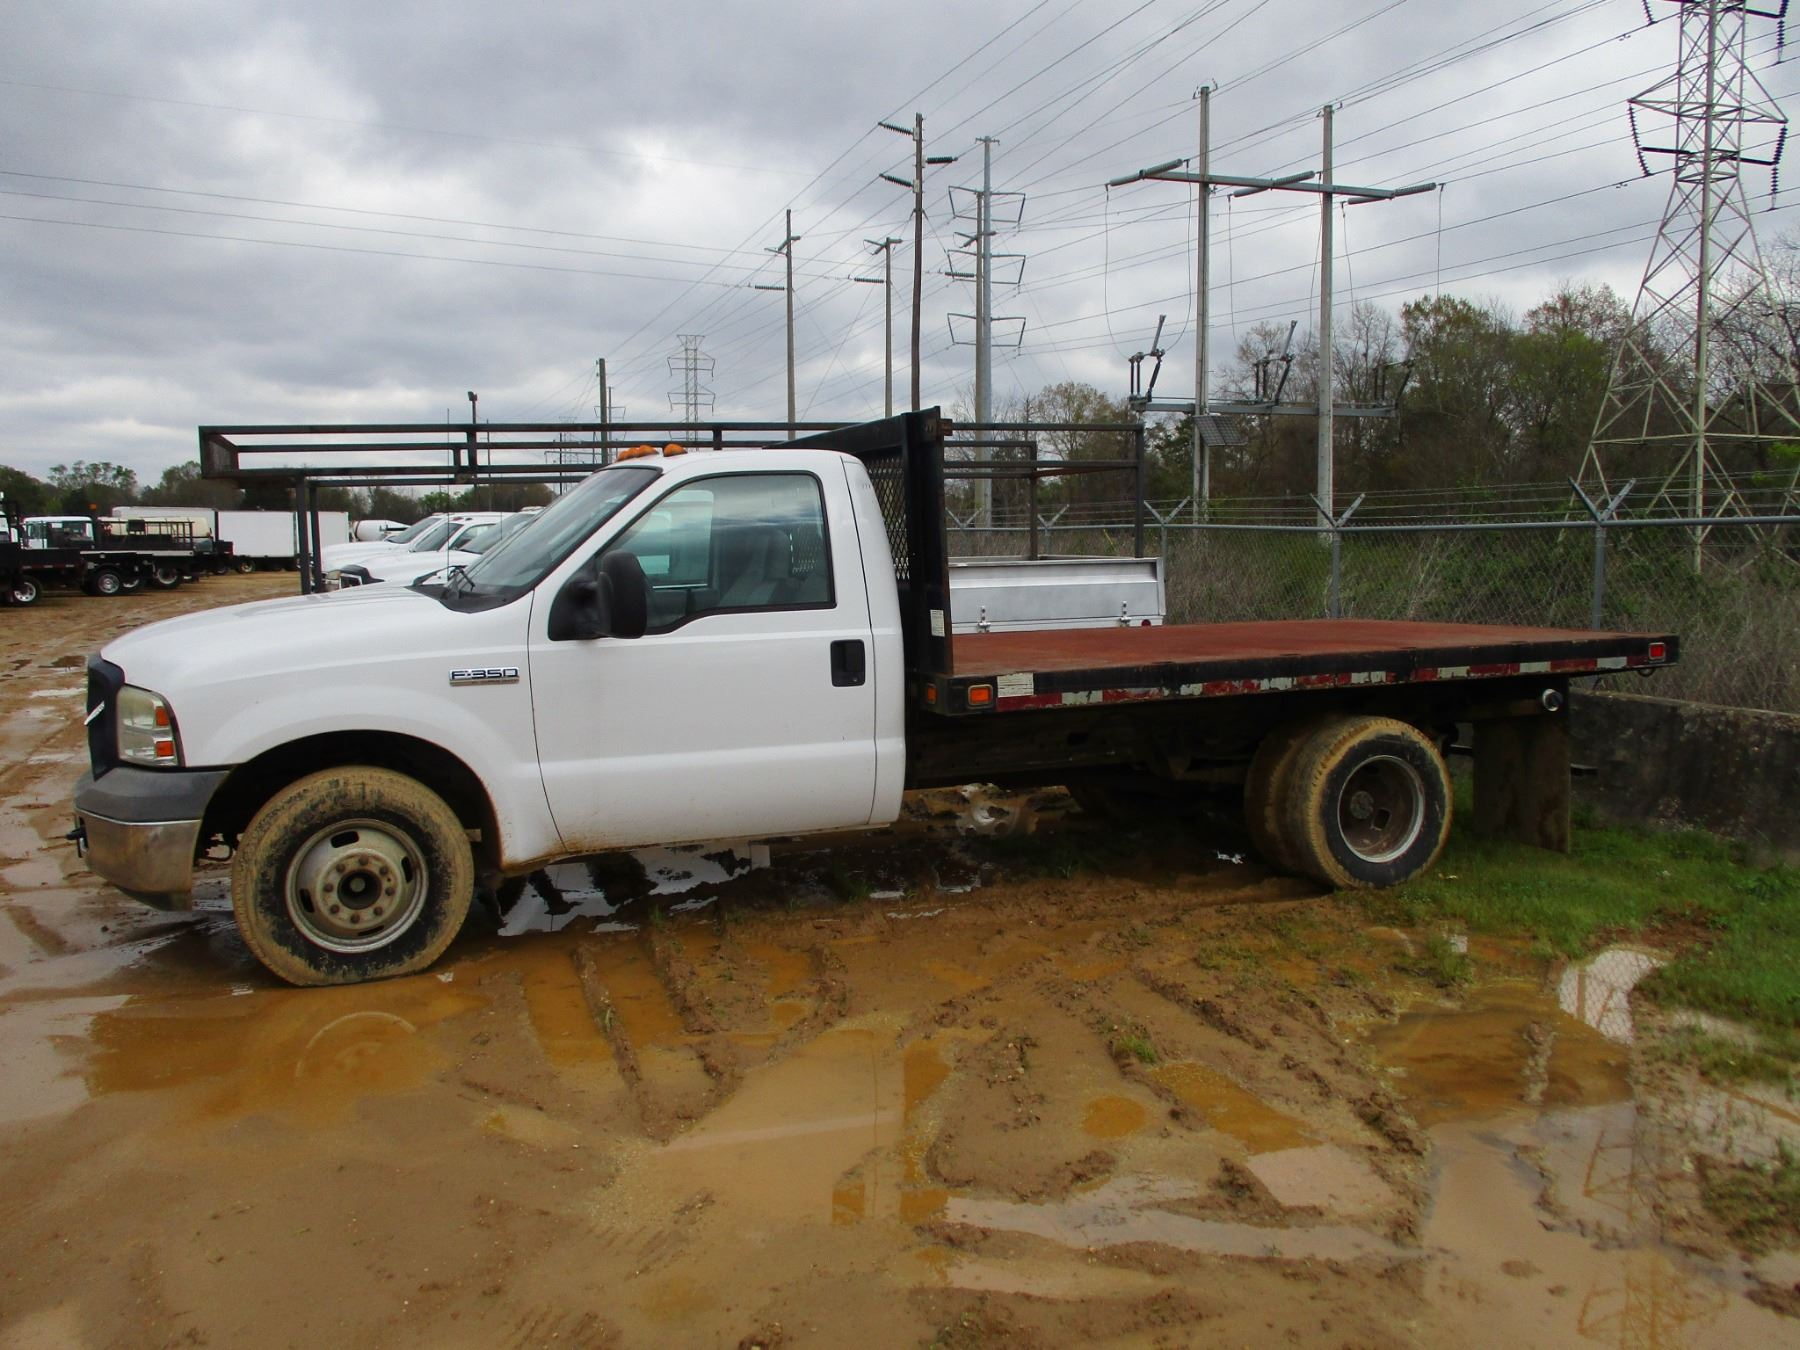 FORD F350 FLATBED TRUCK S A DUALLY GAS ENGINE A T ODOMETER